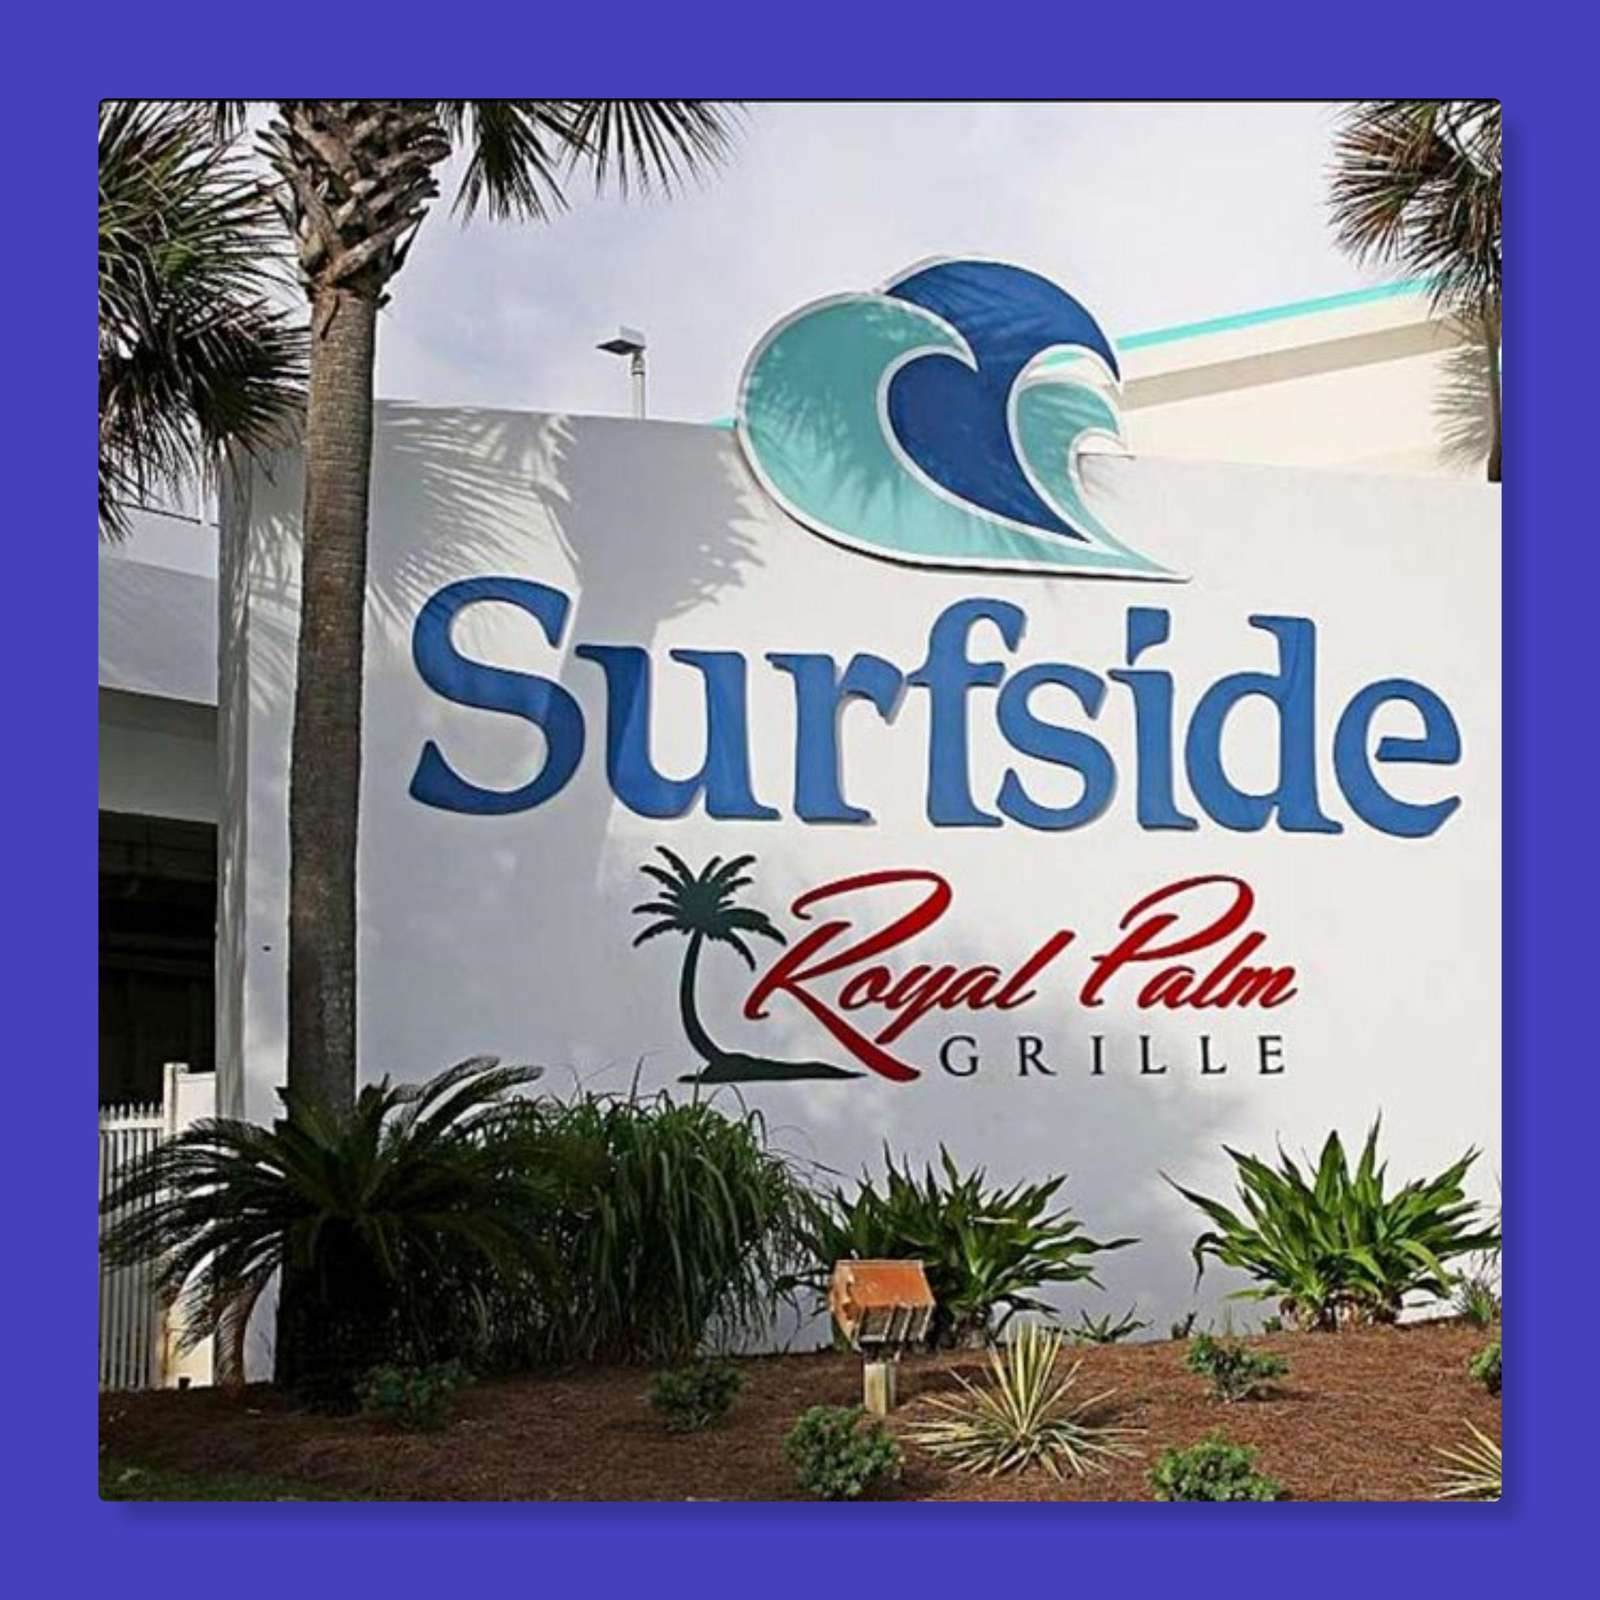 Surfside's restaurant- Royal Palm Grille has a huge outside deck for enjoying your meal while looking over the ocean